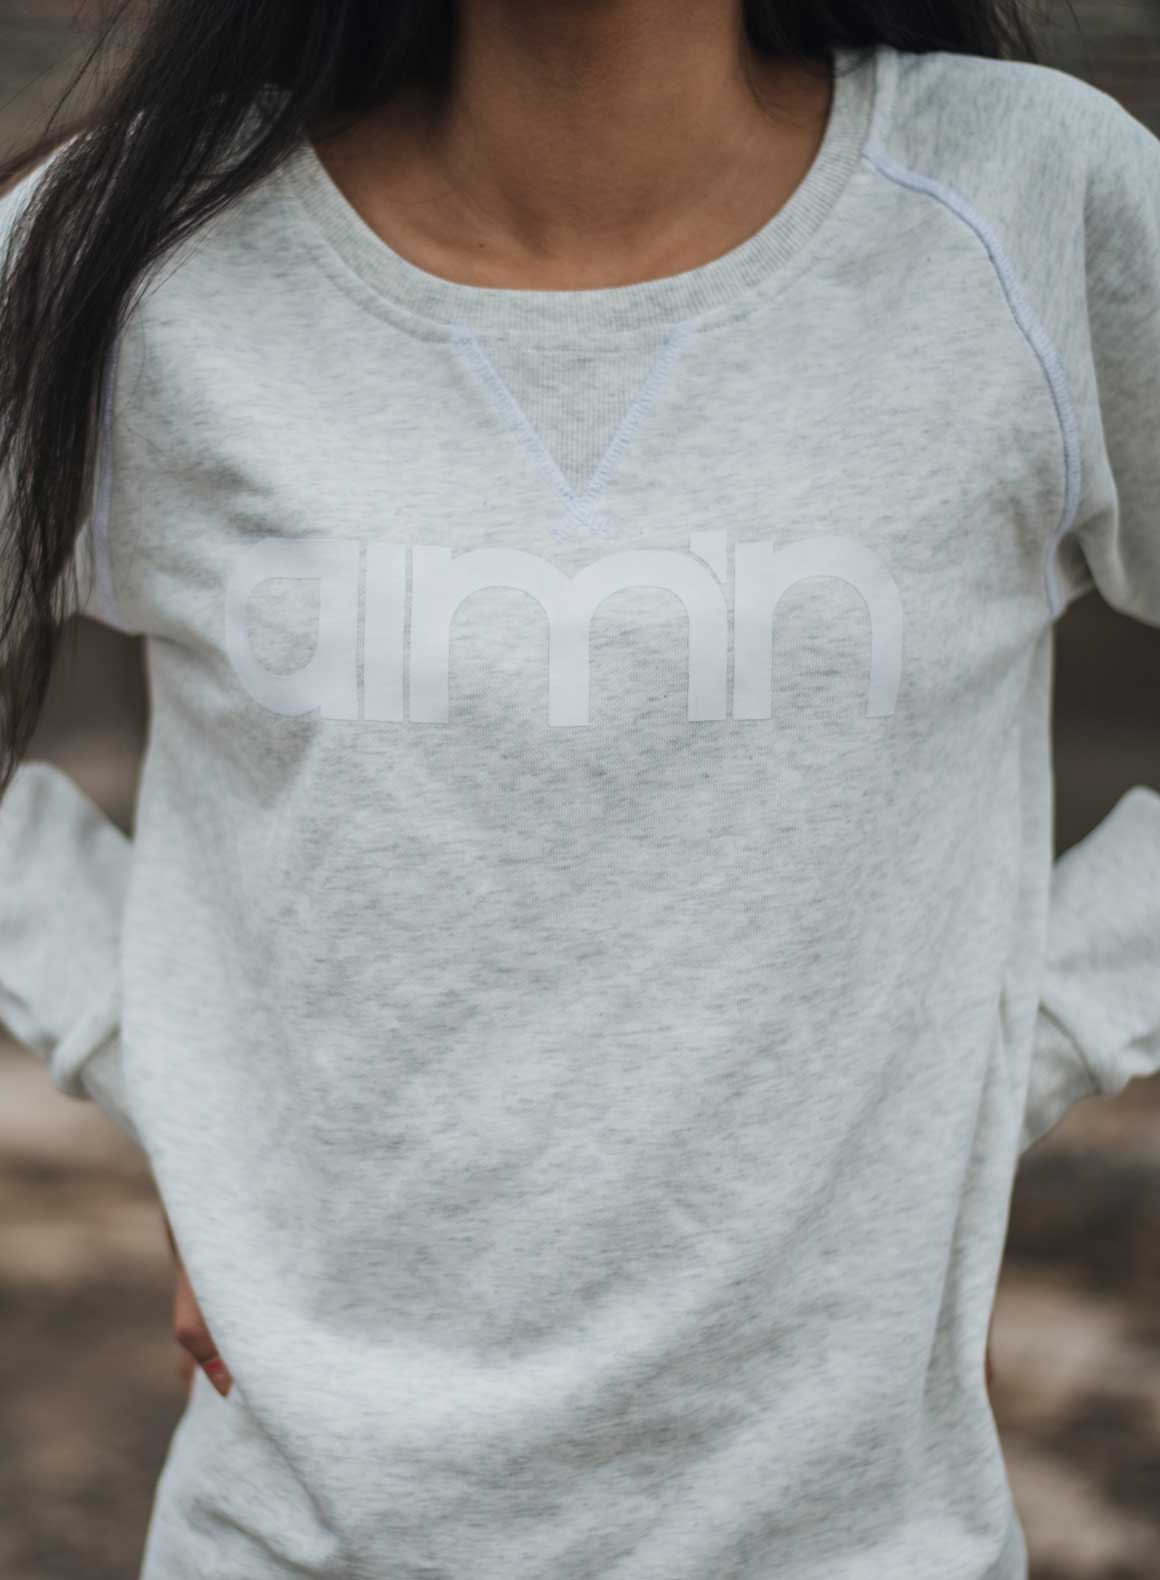 Aim'n Grey Sweatshirt 17050014 b